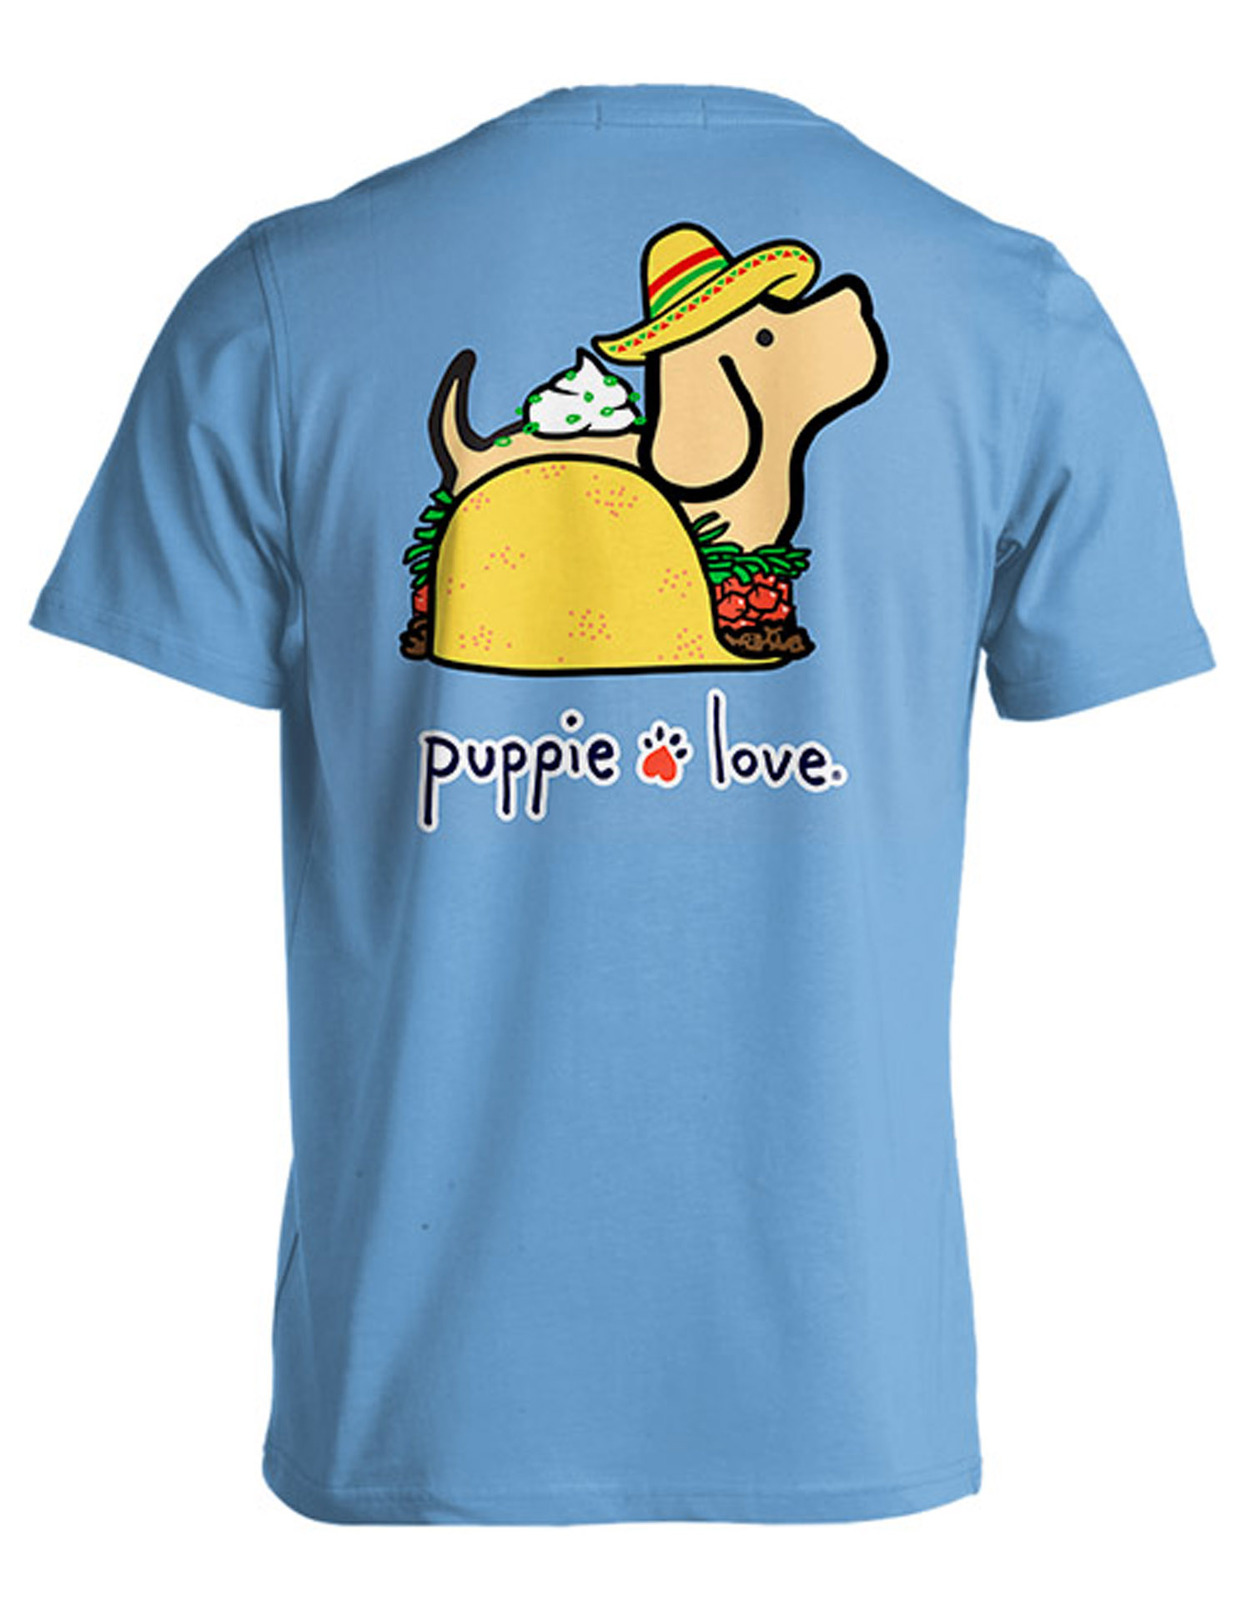 Puppie Love Rescue Dog Adult Unisex Short Sleeve Cotton Tee,Taco Pup